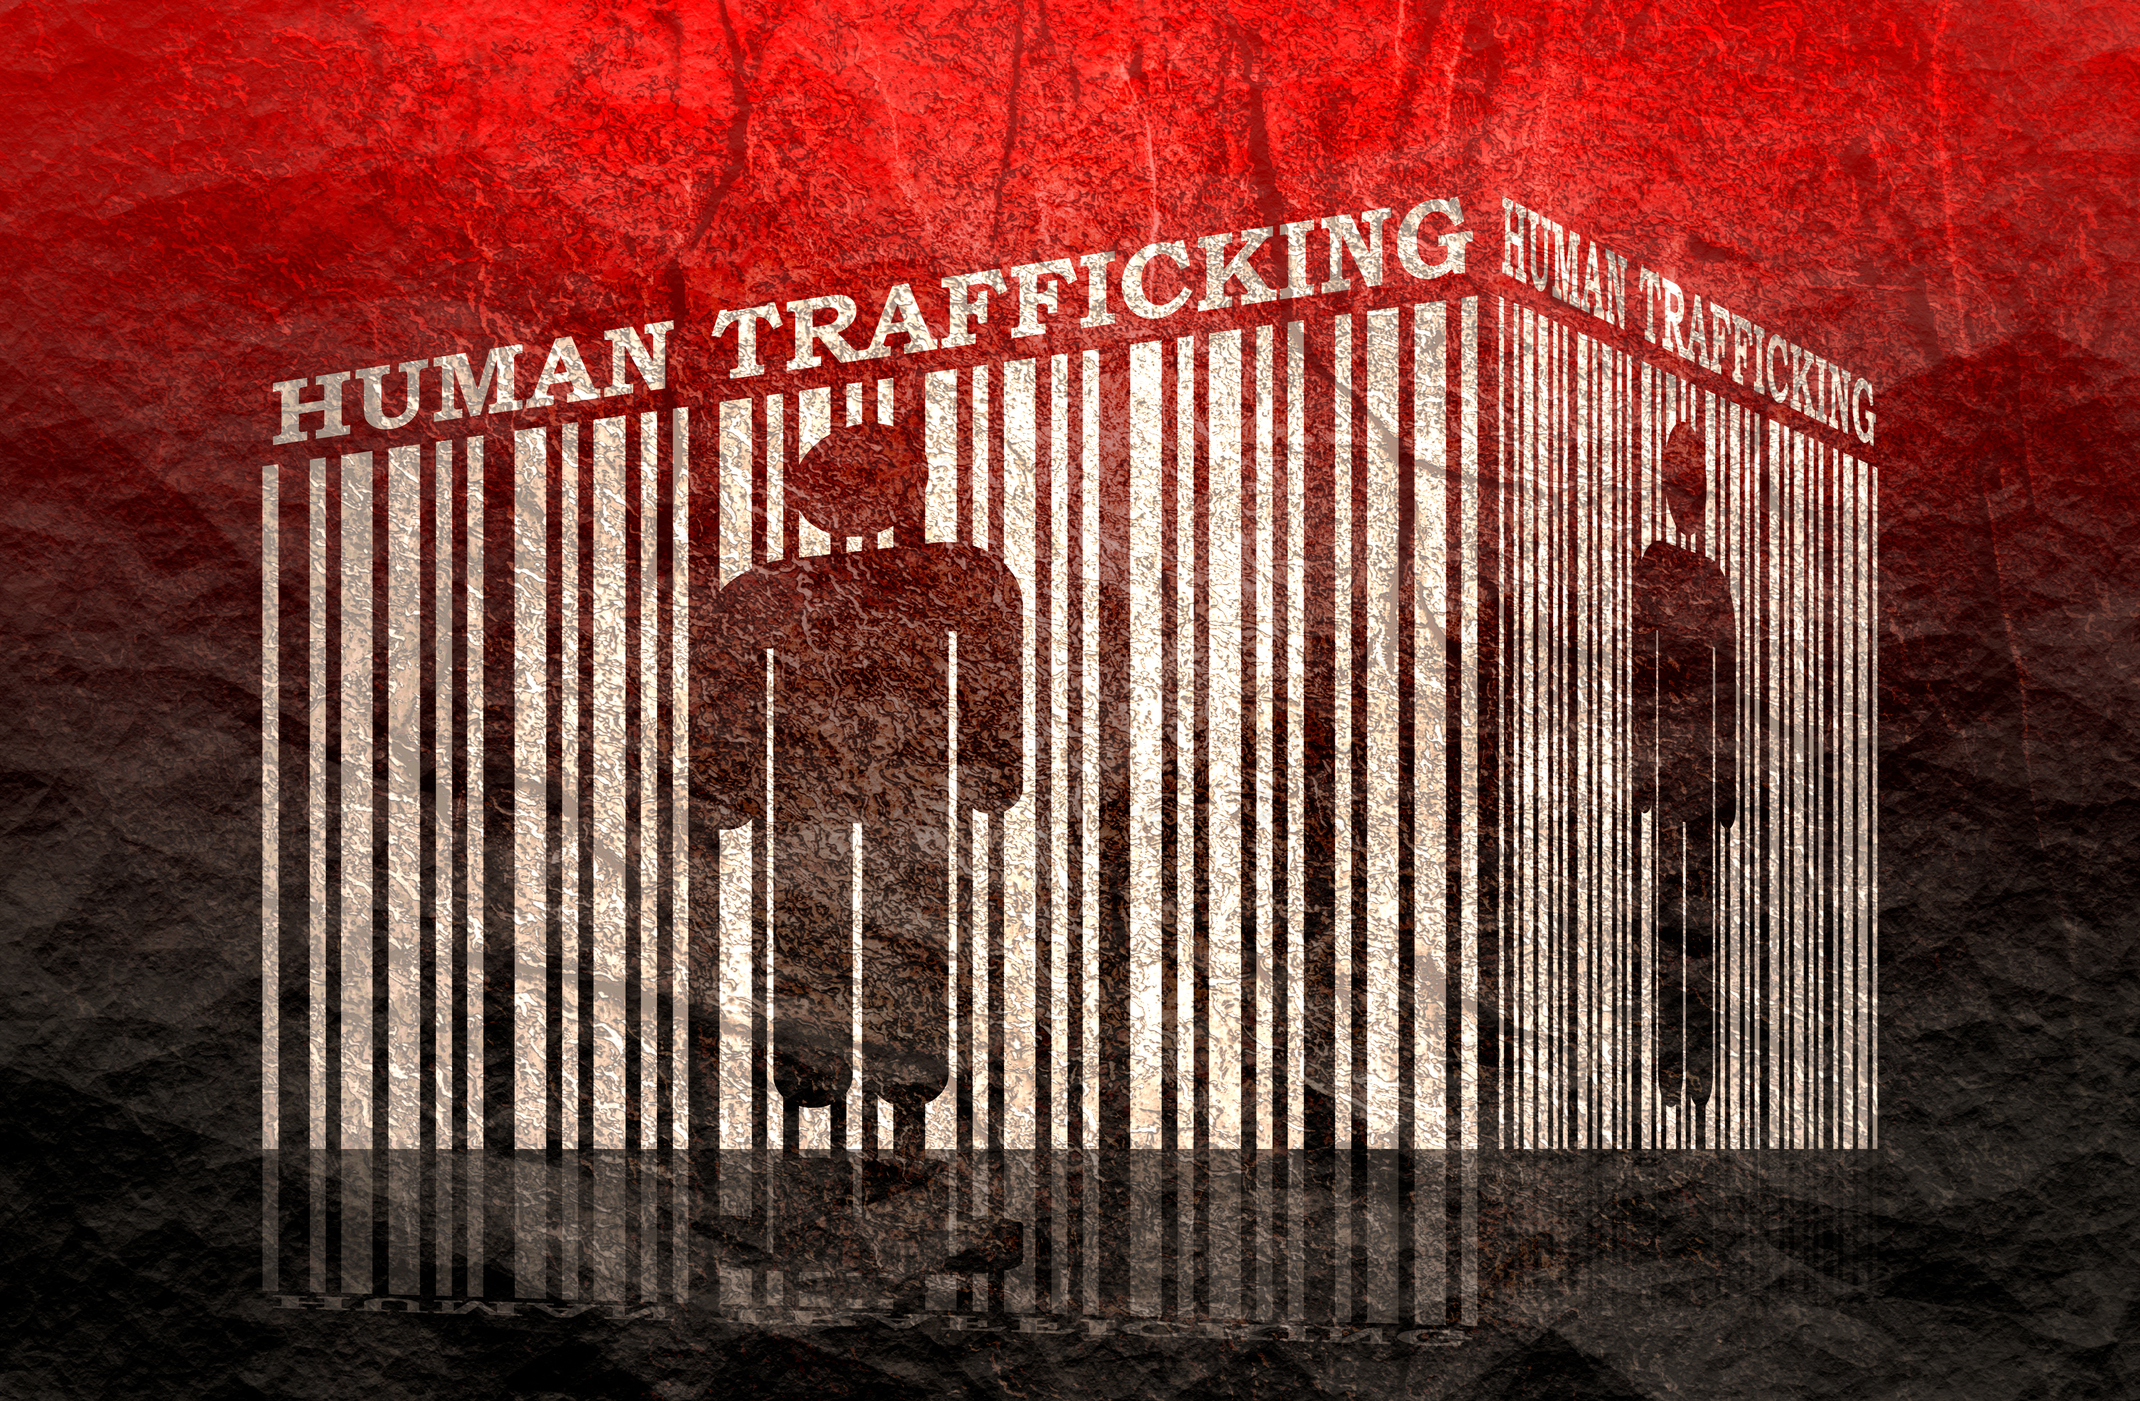 Human Trafficking Rotary Club of Irvine